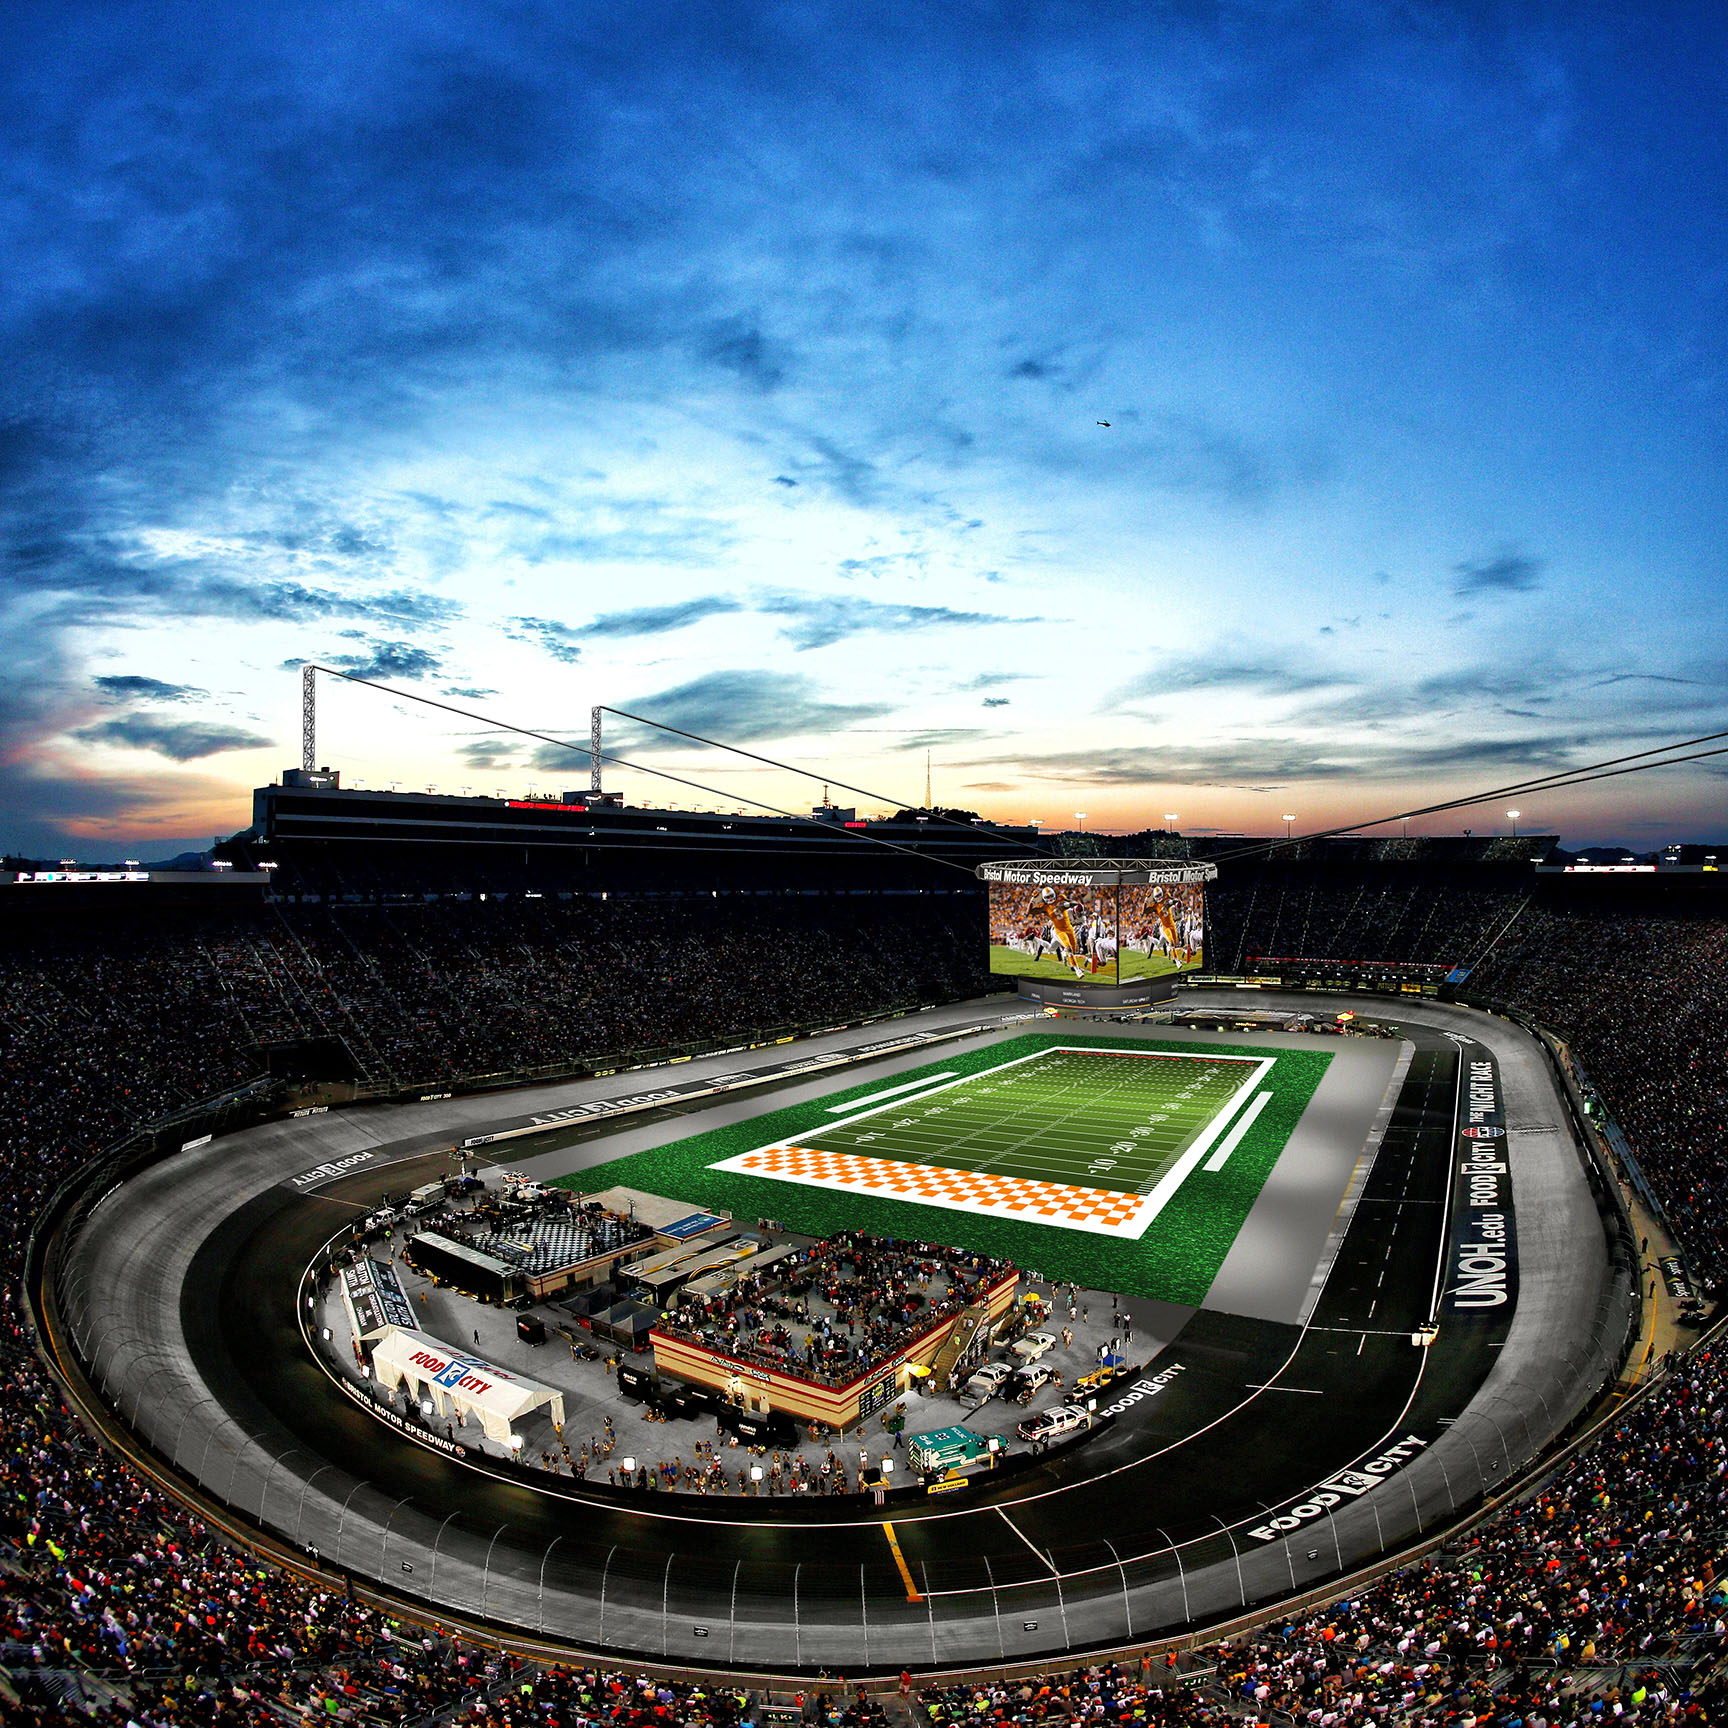 A rendering of Bristol Motor Speedway with football field. BMS will host the Battle at